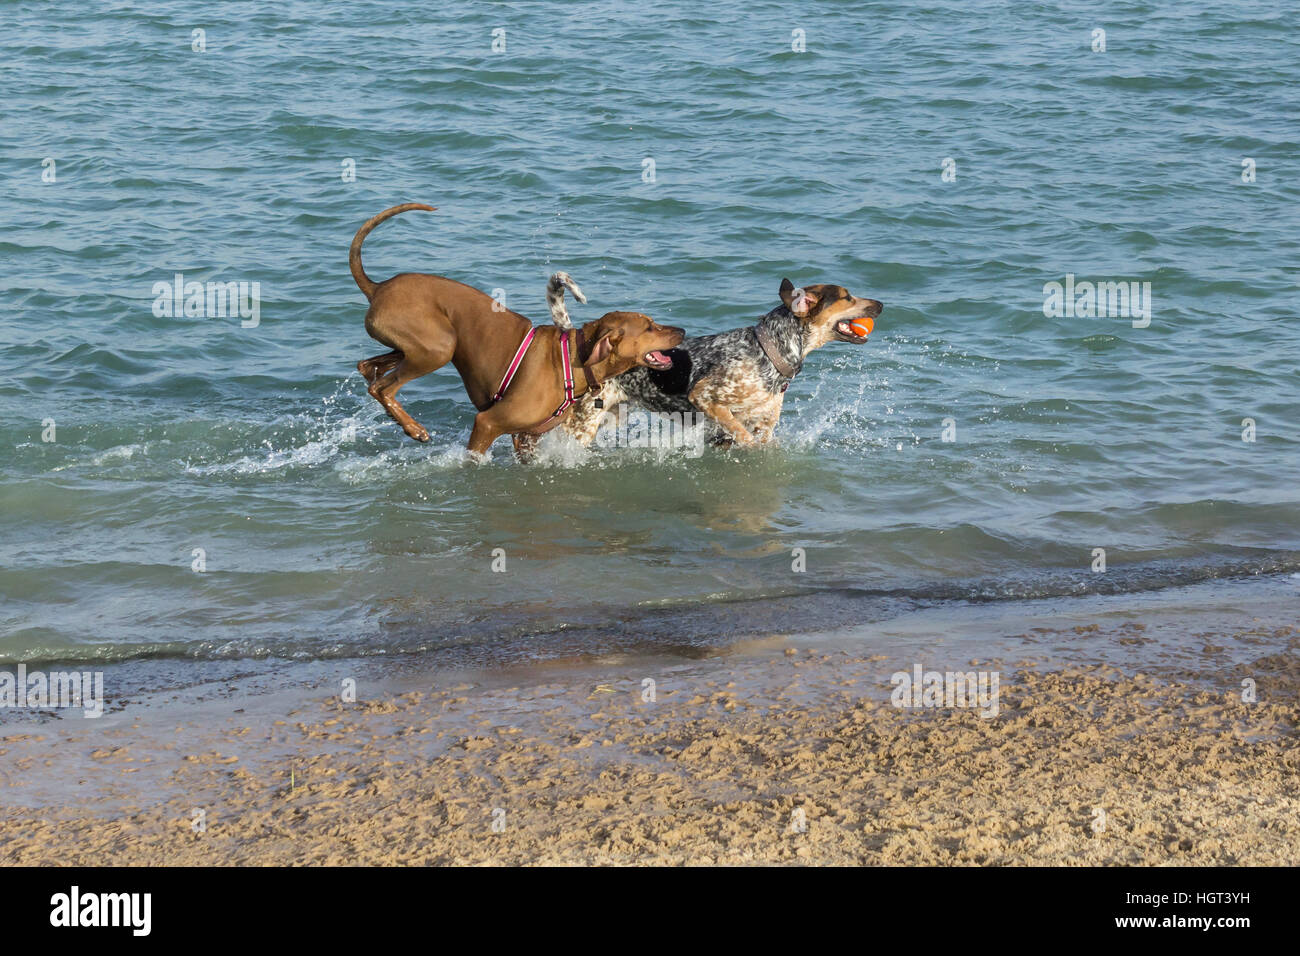 Coonhound and Rhodesian Ridgeback mutts playing fetch in a dog park pond splashing near the beach - Stock Image